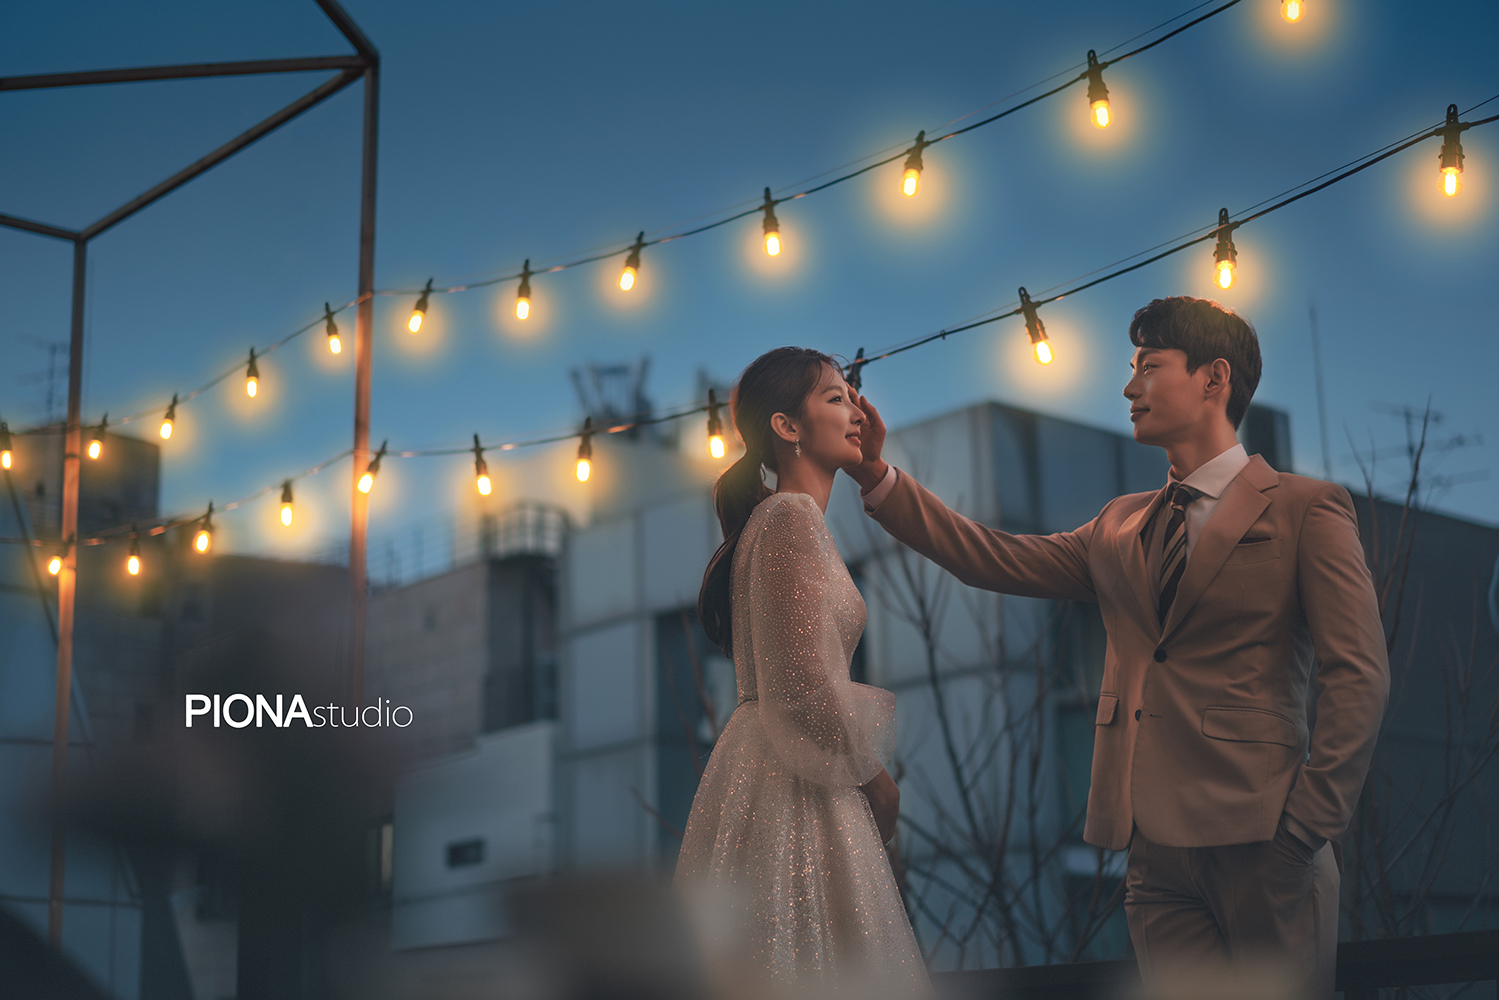 korean wedding photoshoot suspended lightbulbs over couple